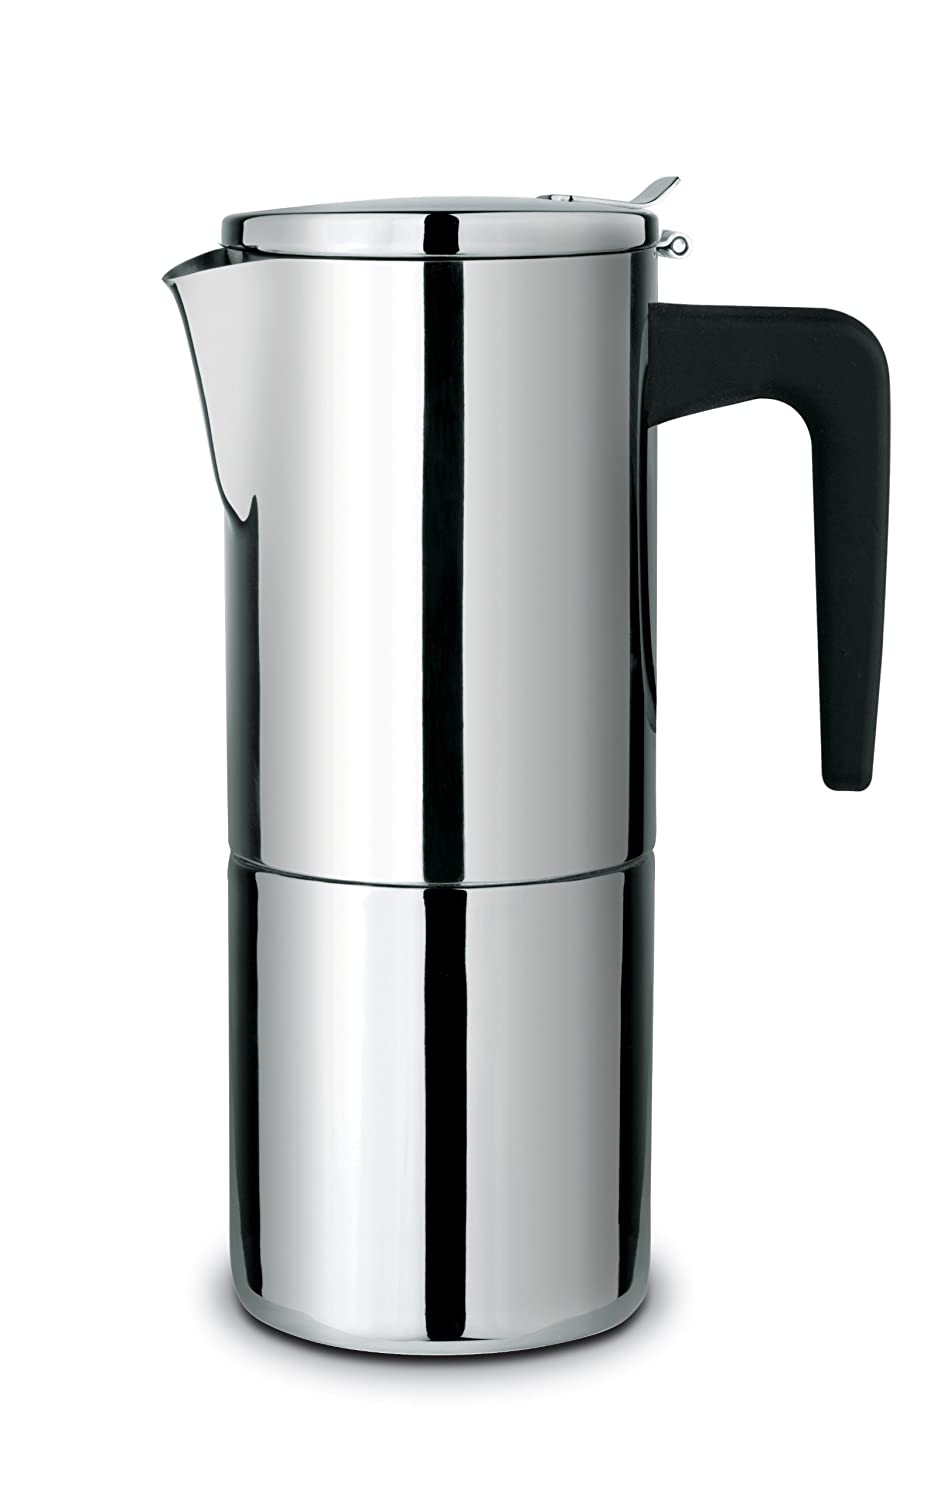 Cuisinox COF-A6 Alpha 6-Cup Espresso Coffeemaker, Stainless Steel Cuisinox (Import)